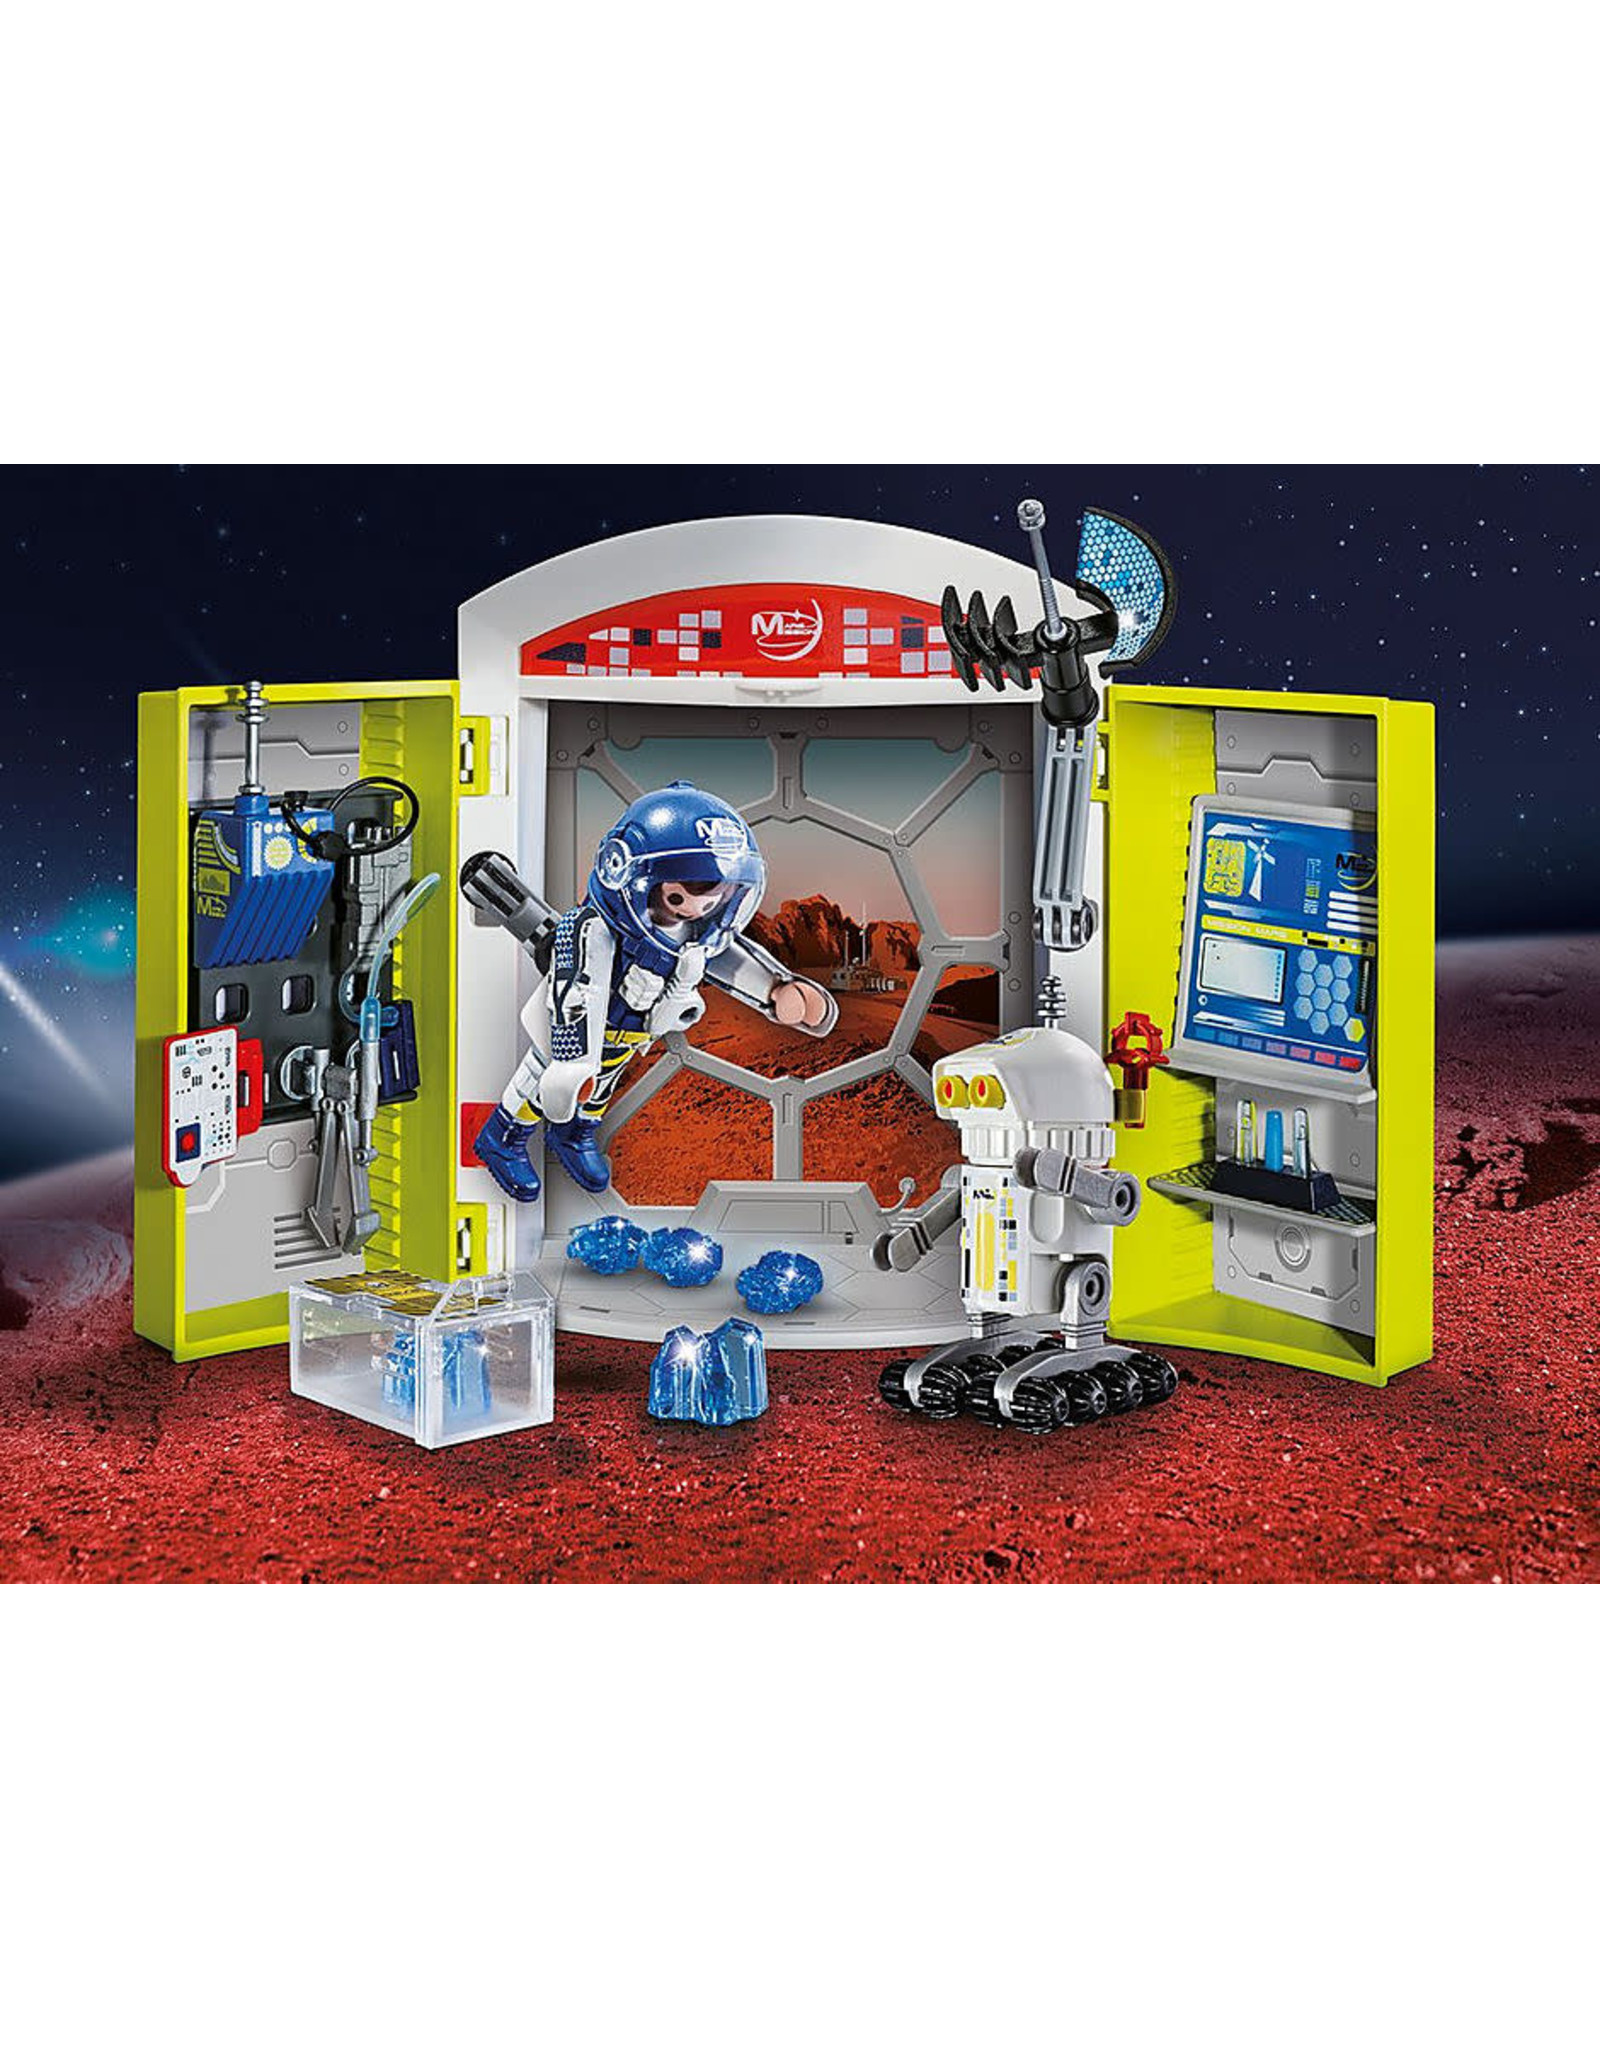 Playmobil Mars Mission Play Box